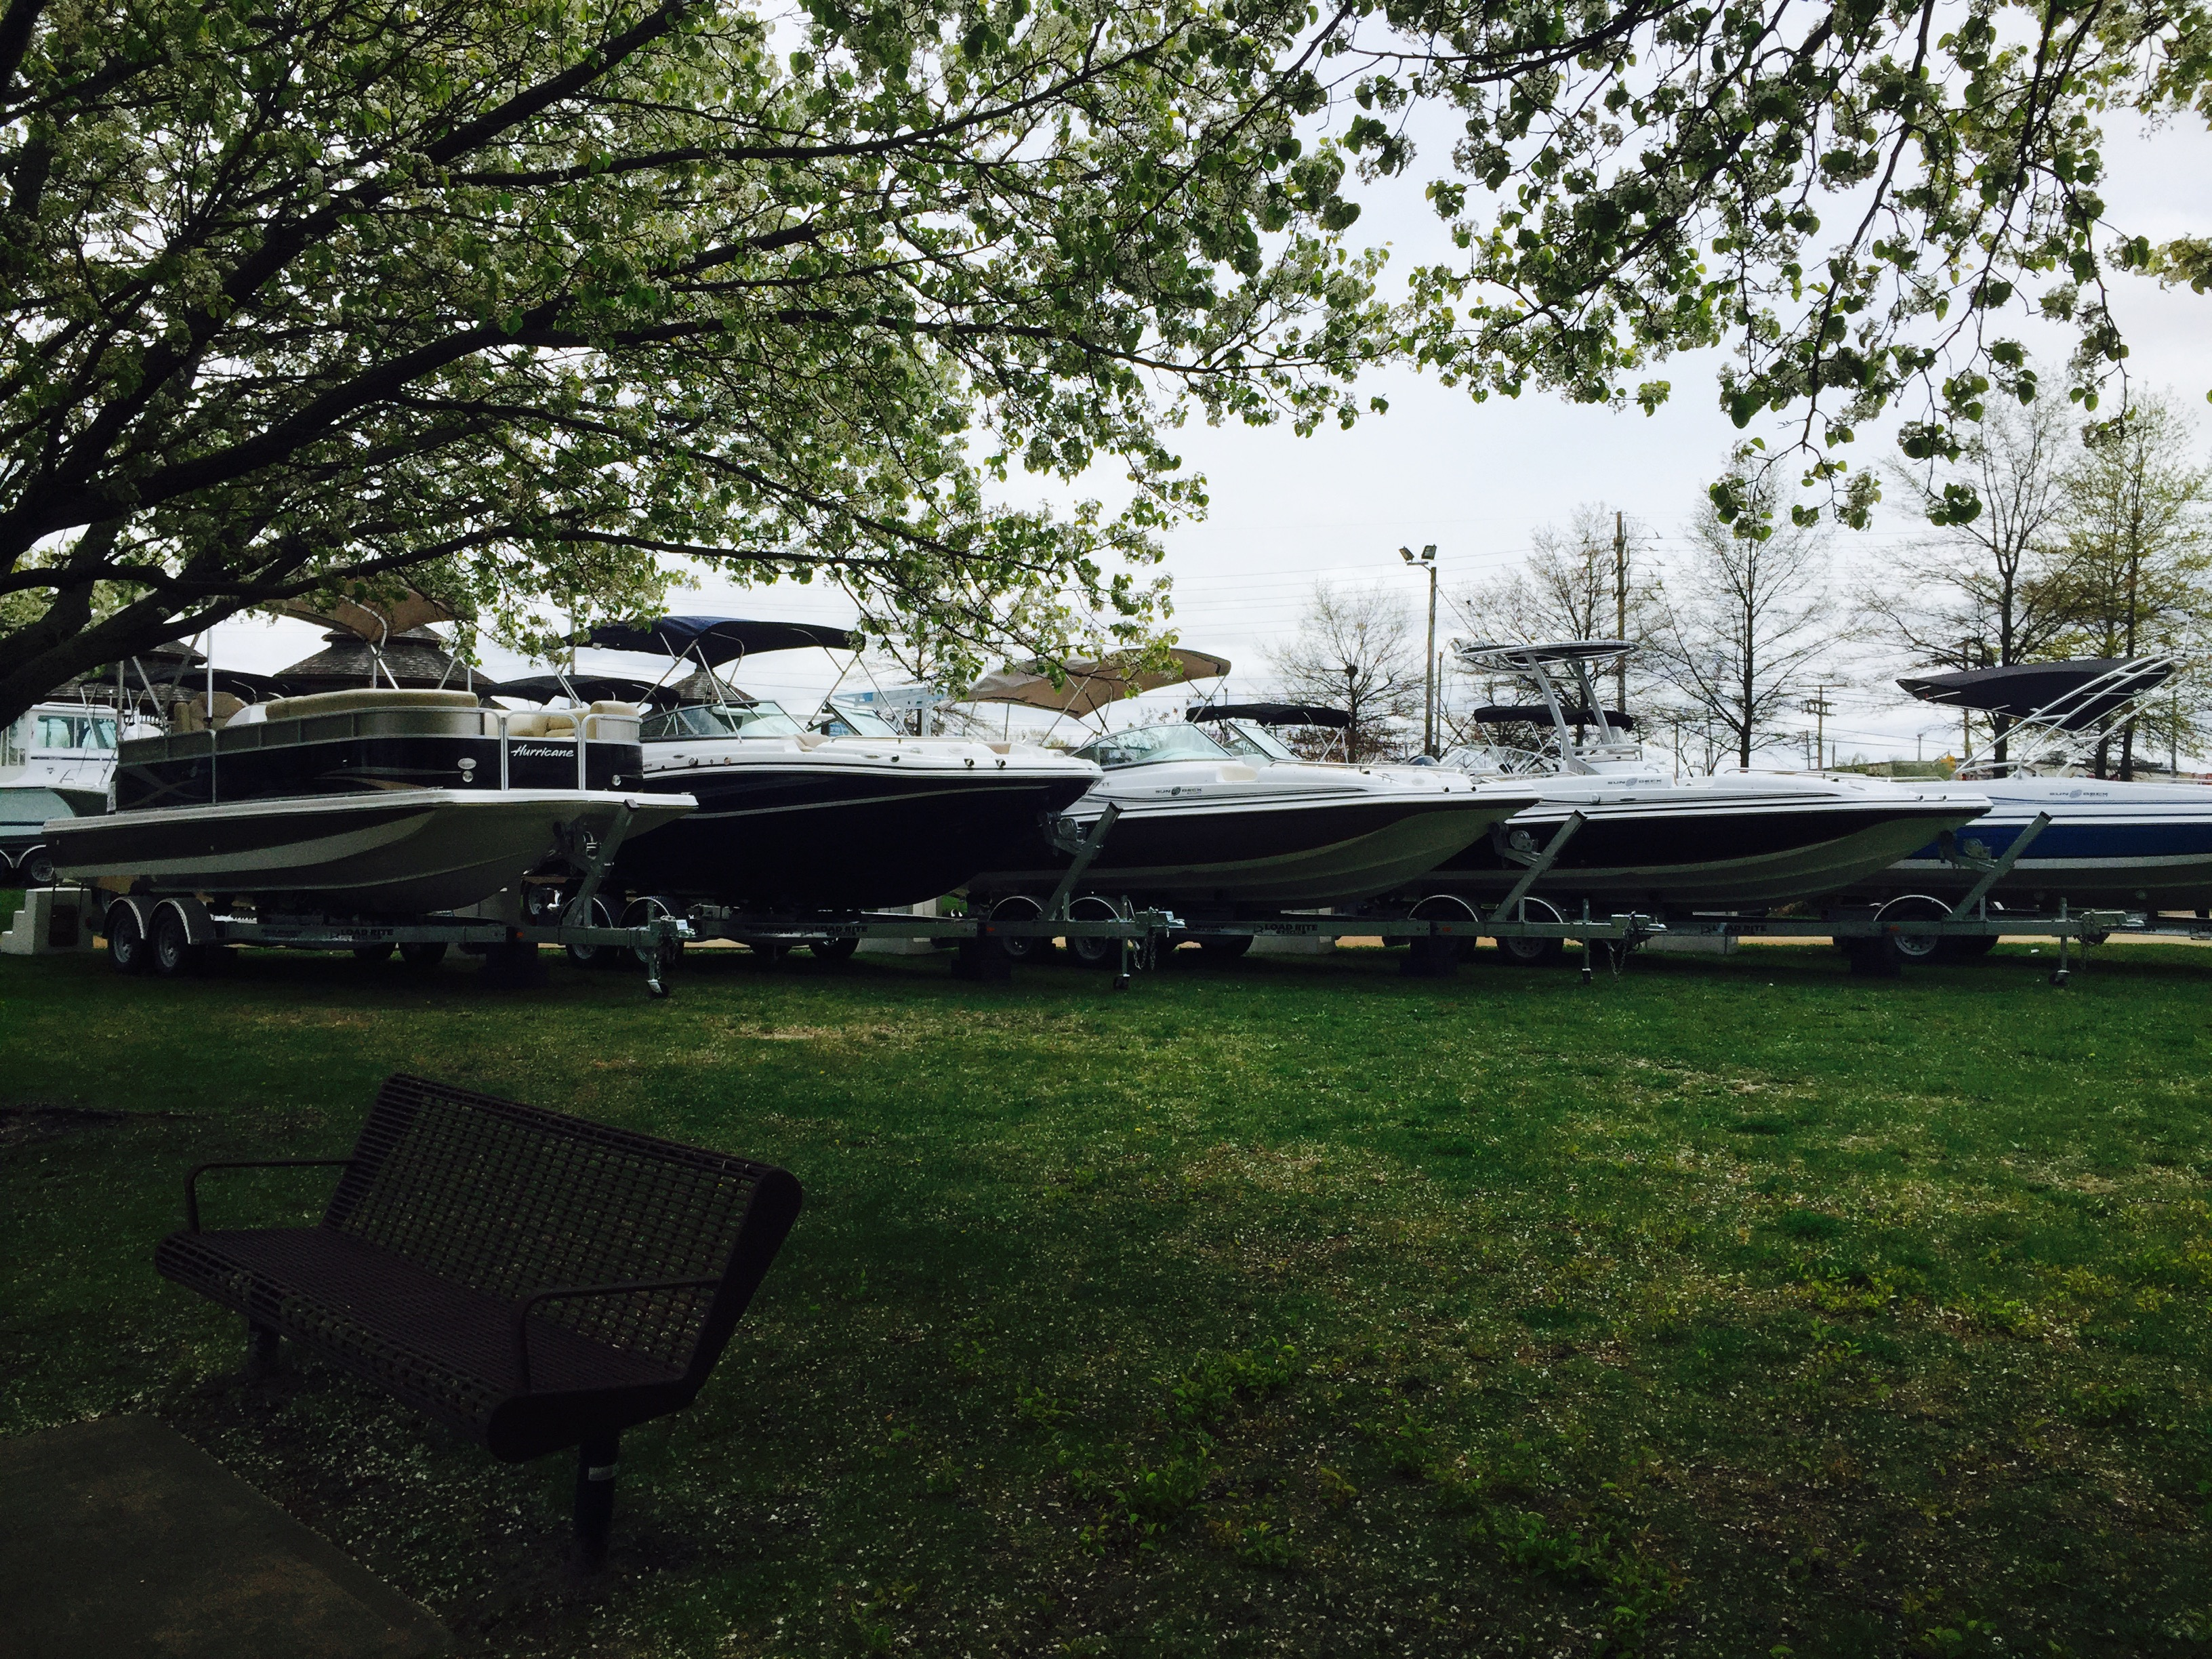 The hurricane deck boats line at the spring 2015 huddy boat show